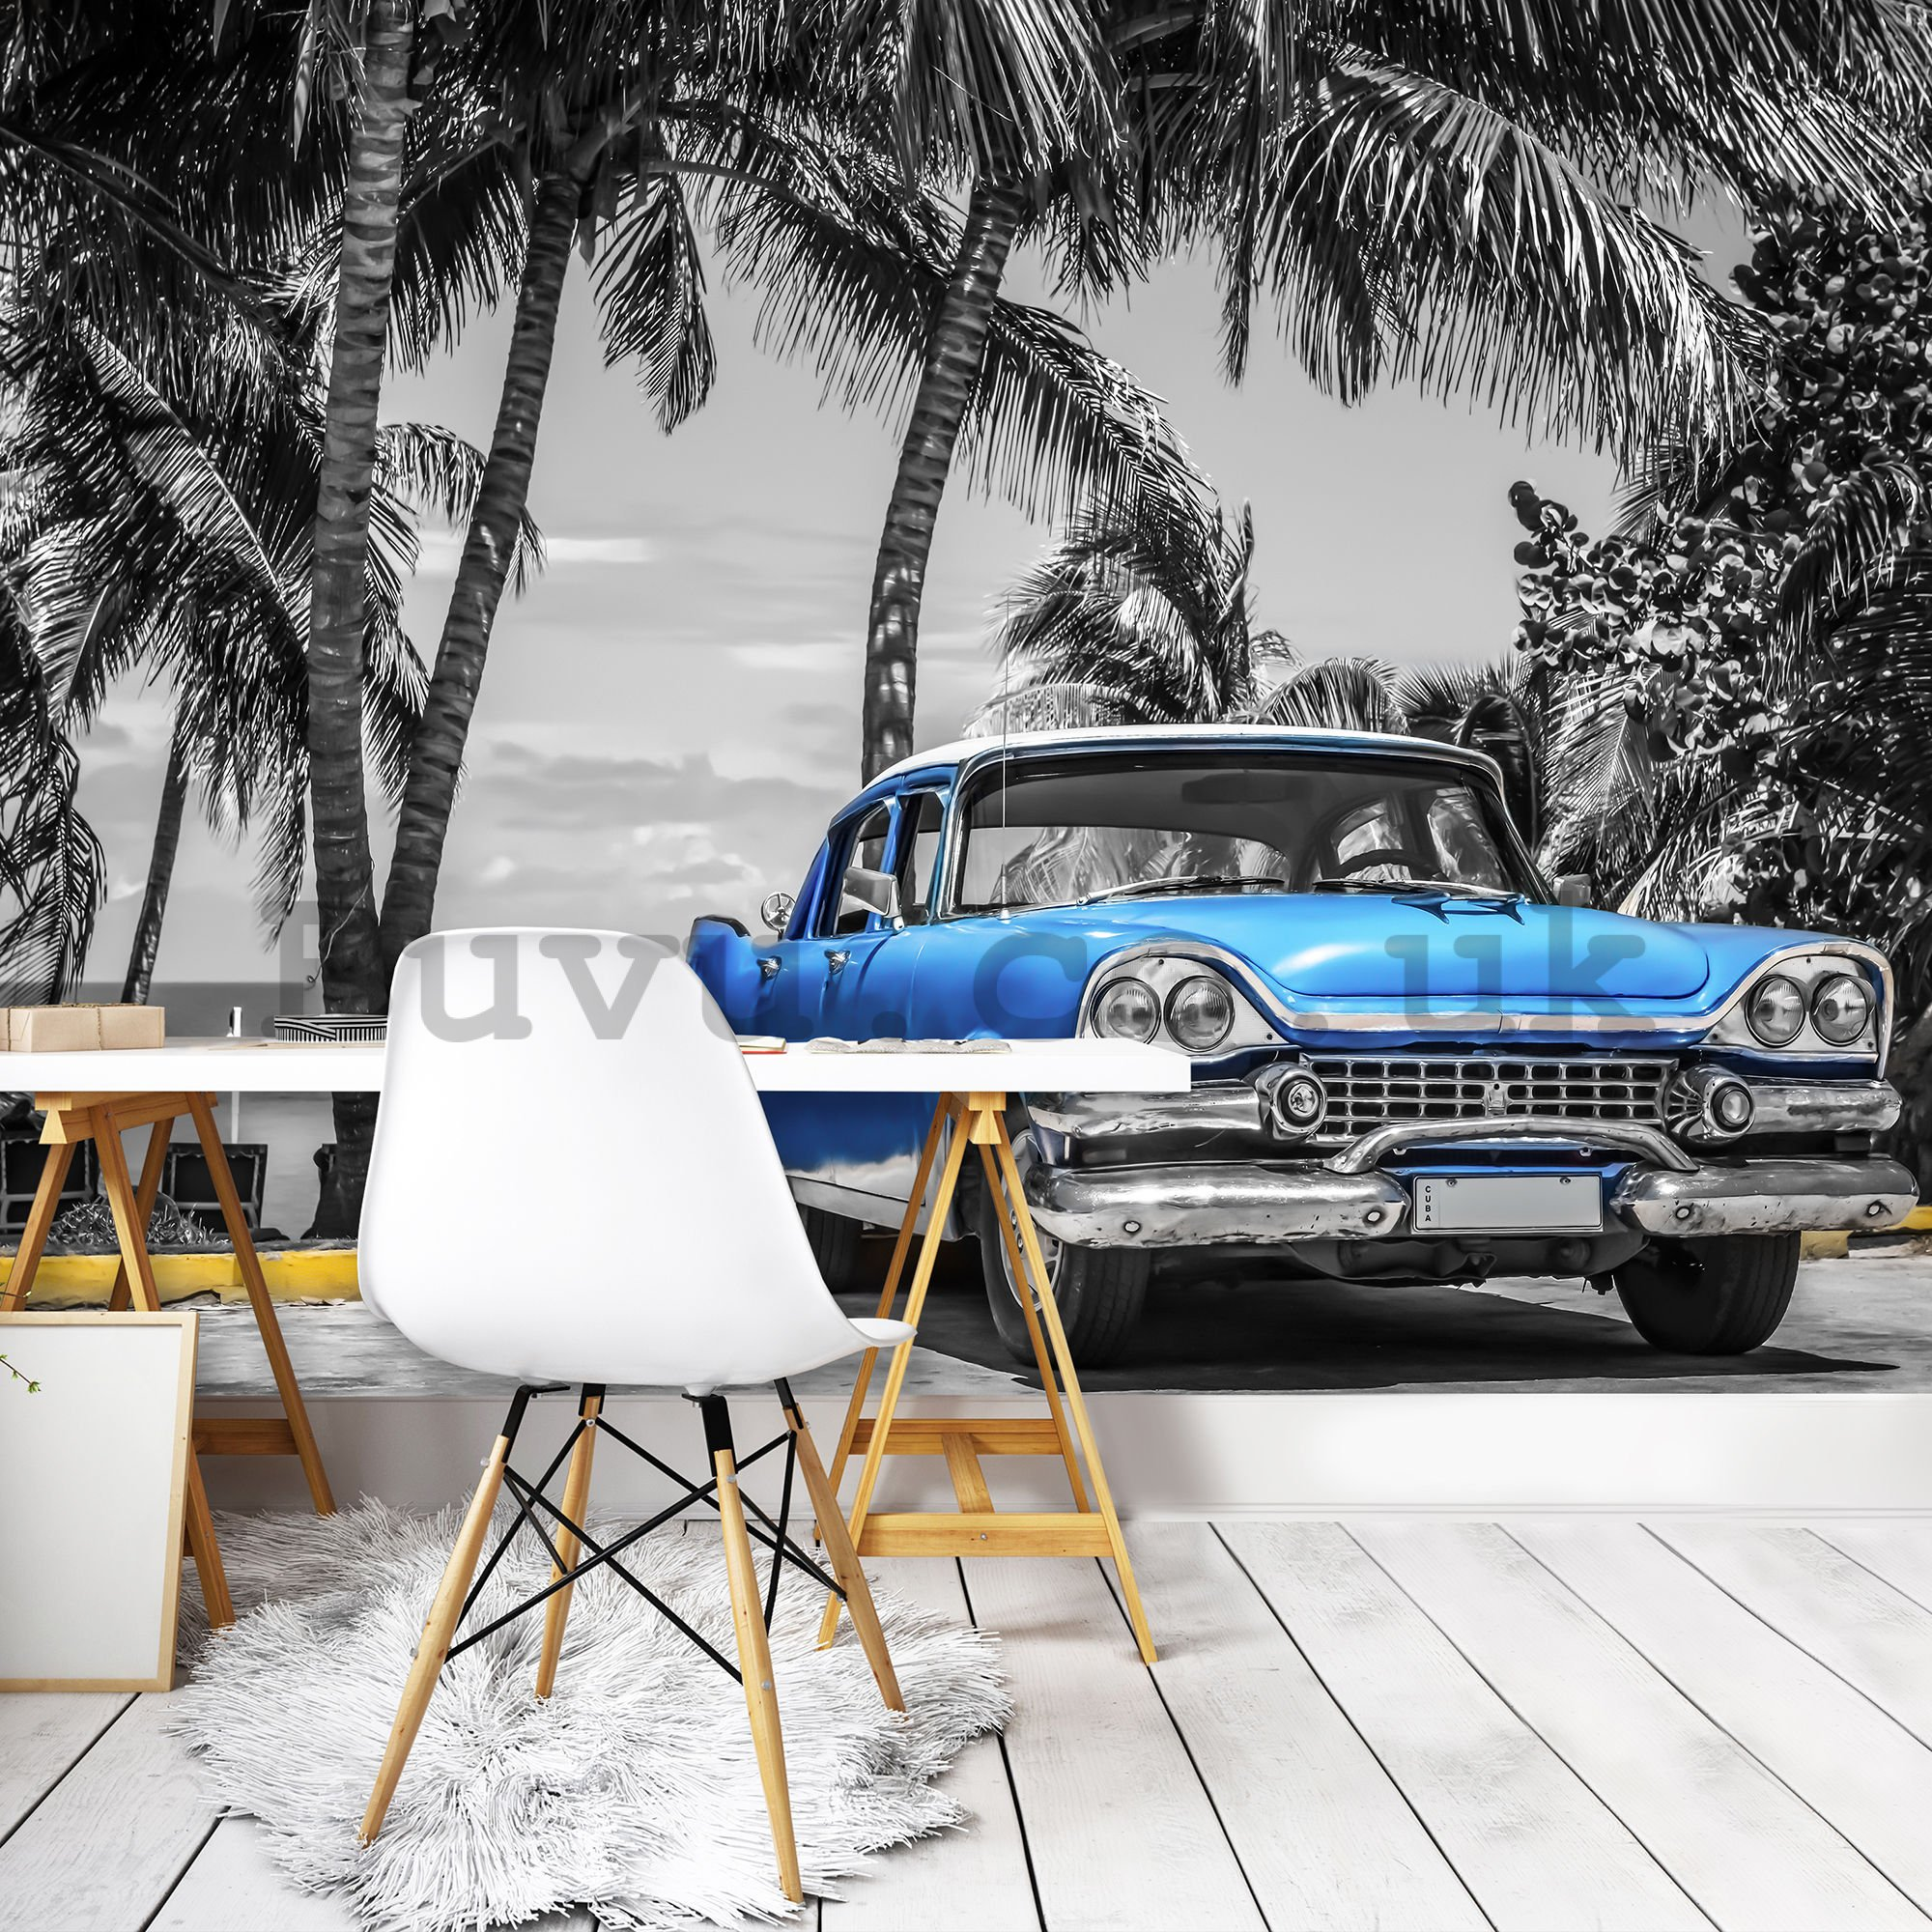 Wall mural vlies: Cuba blue car by the sea - 184x254 cm